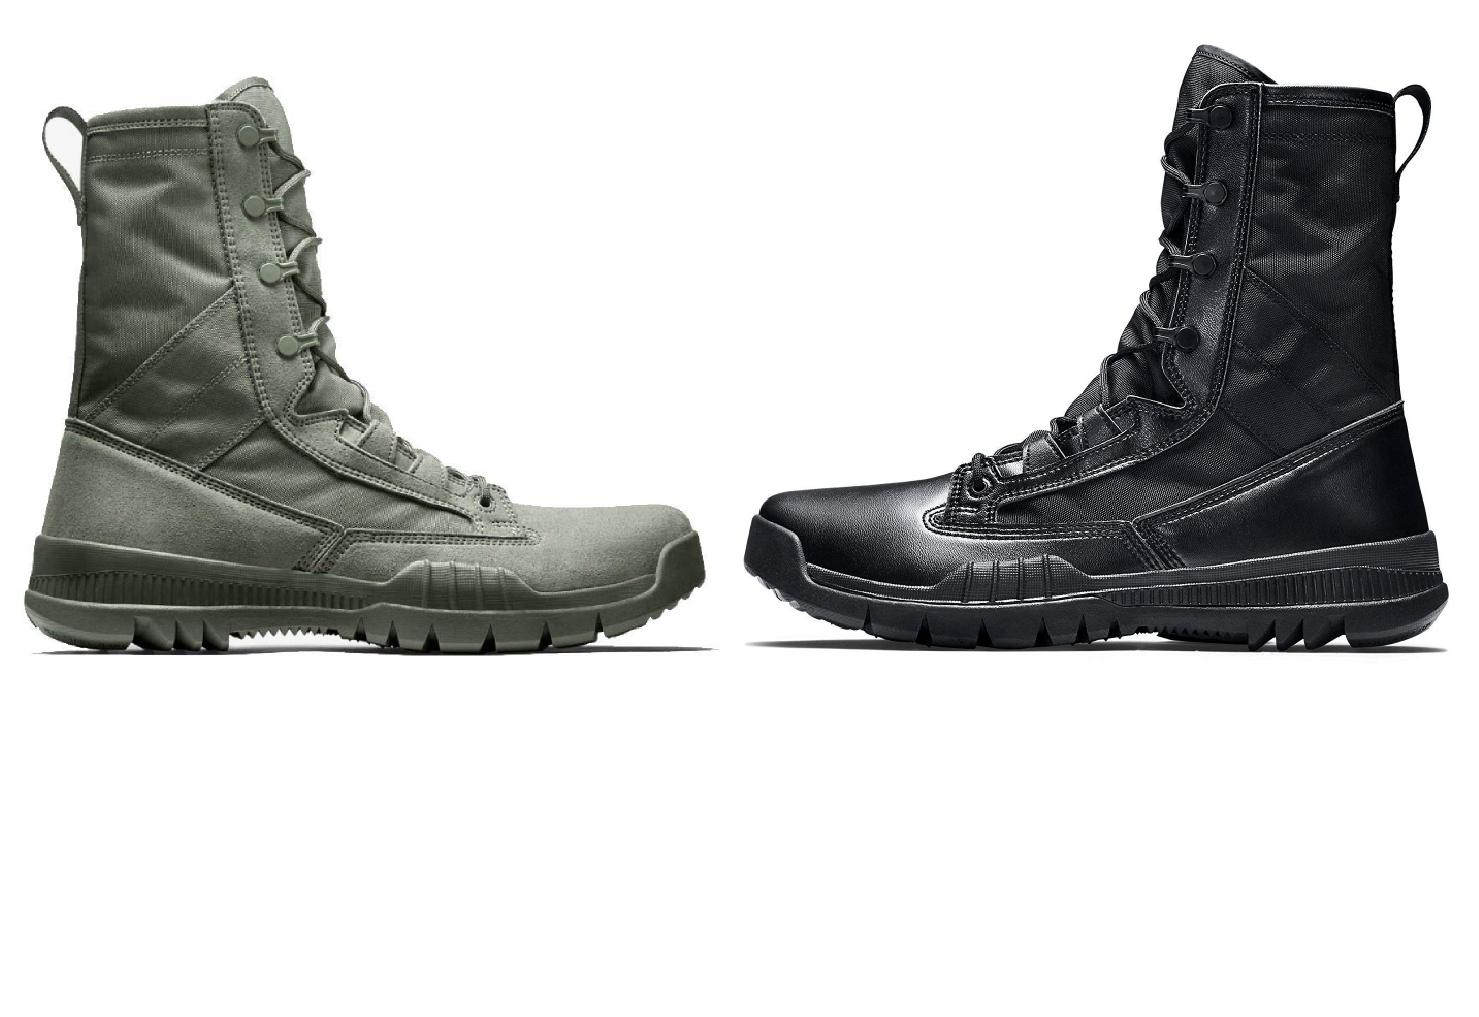 sfb field 8 boots mens tactical military